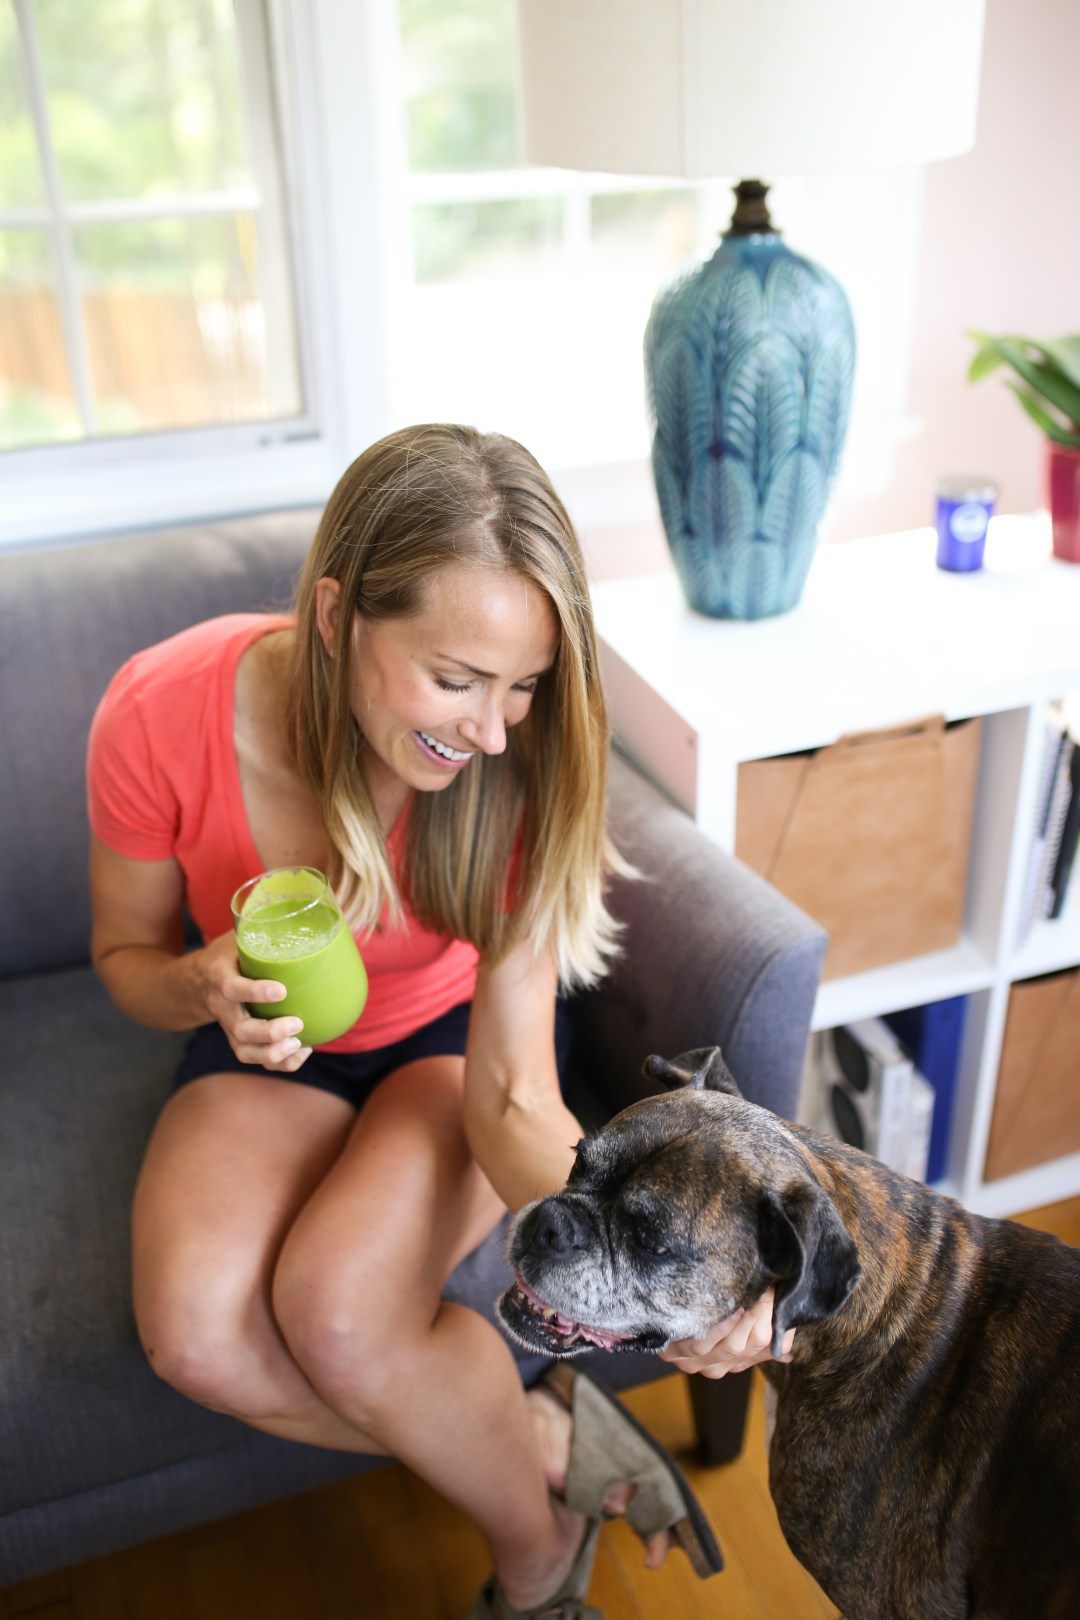 teri and dog, holding green smoothie